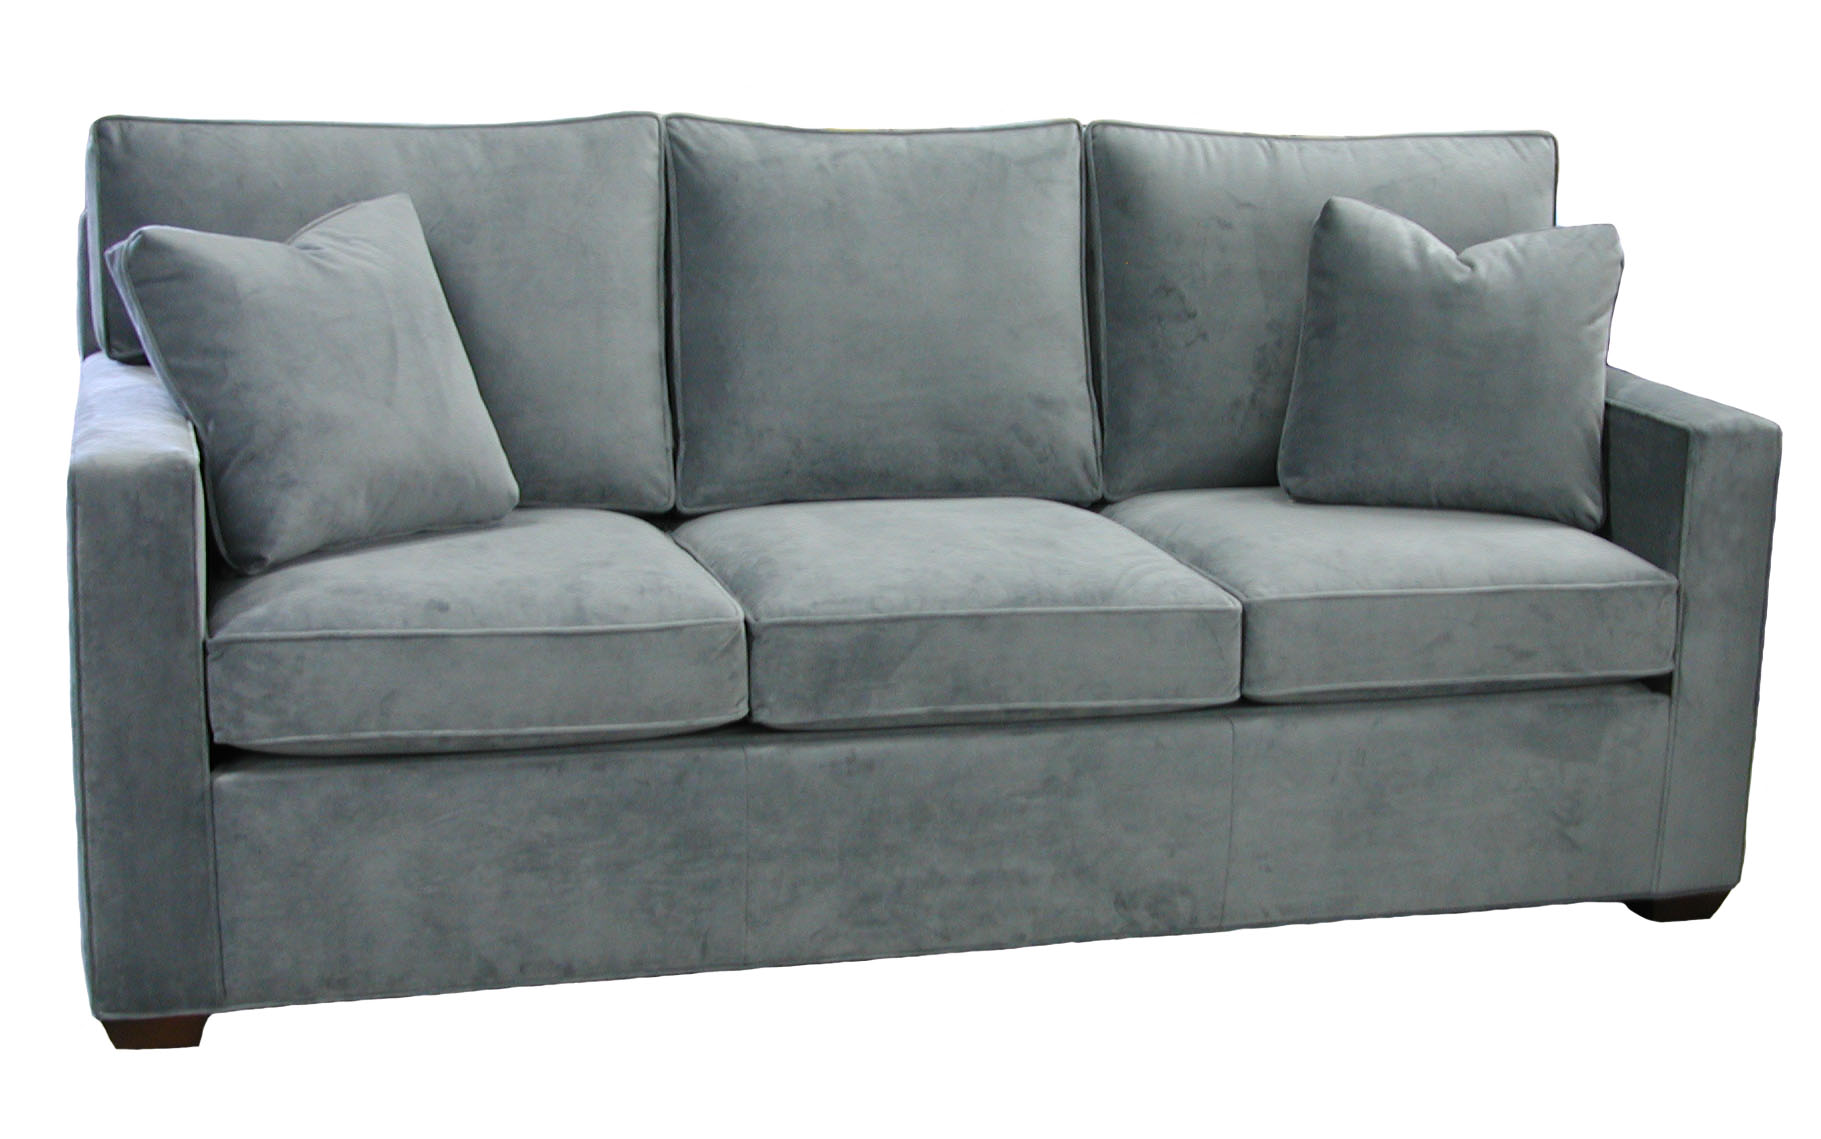 Spenser Queen Sleeper Sofa